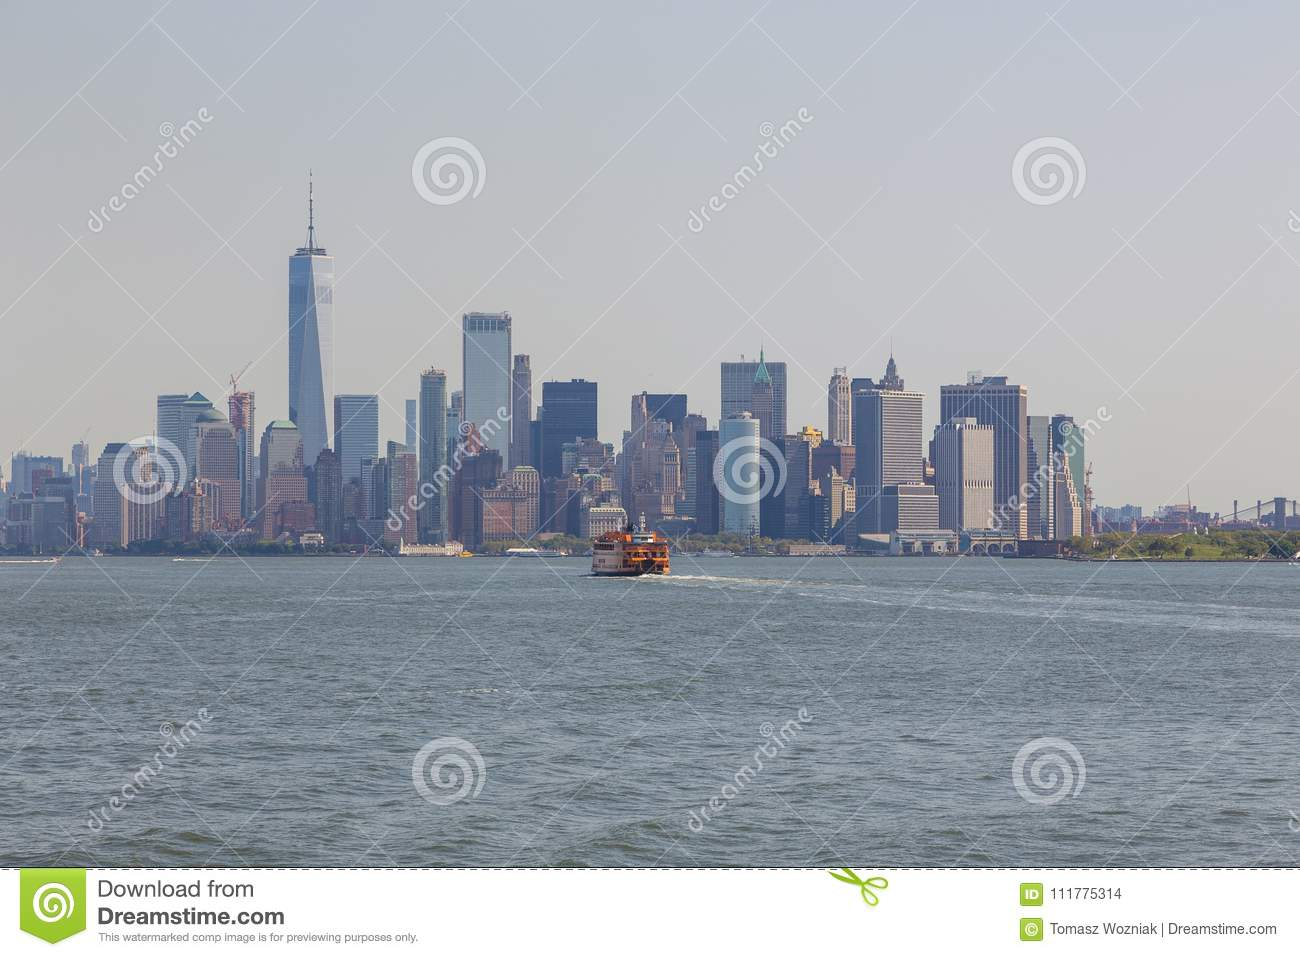 Panoramic view of Manhattan City skyline, New York.